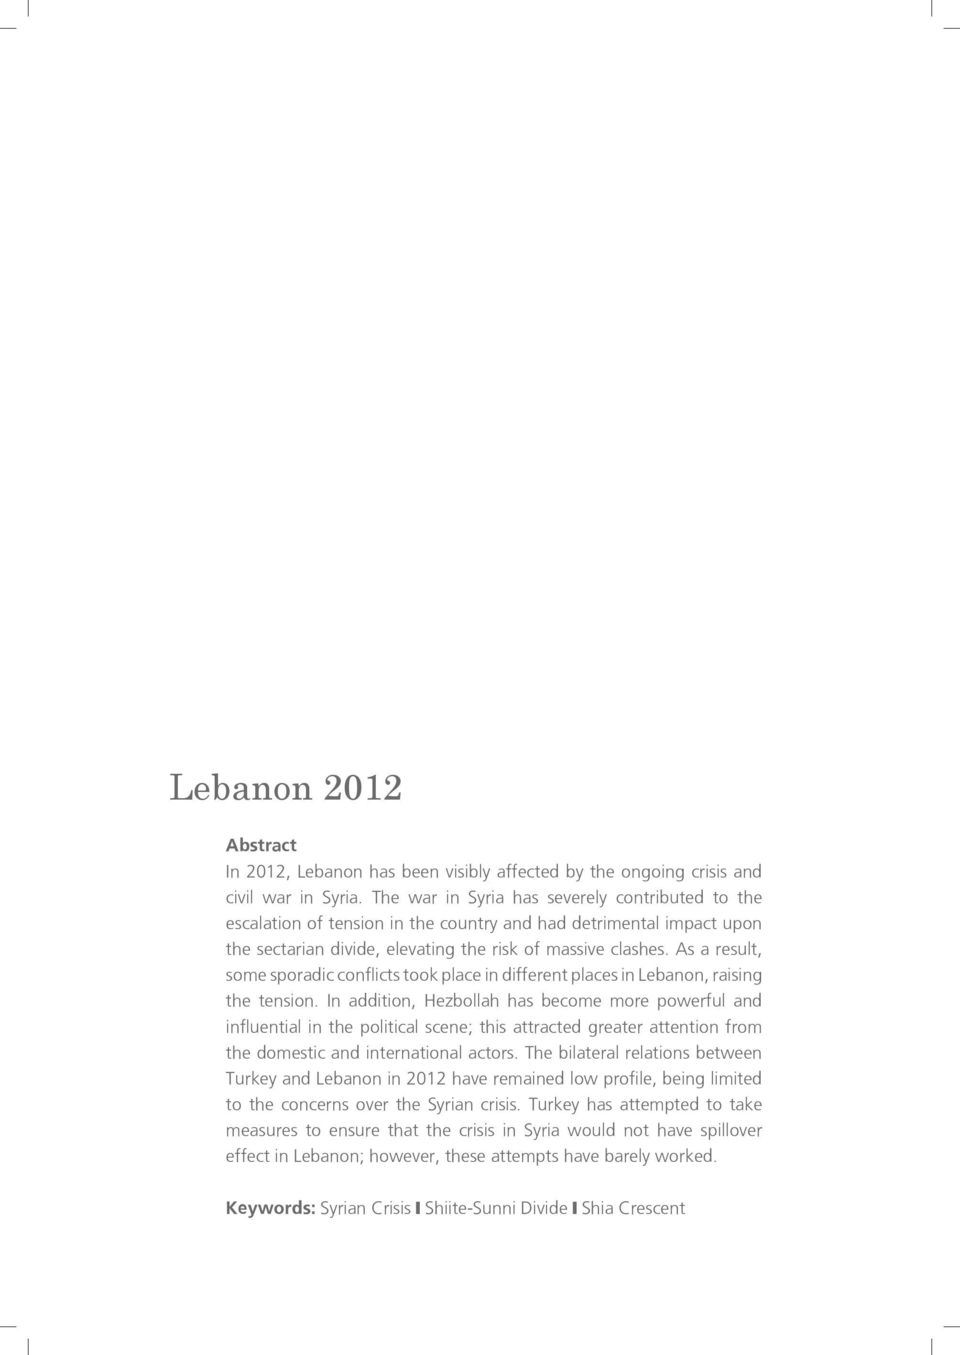 As a result, some sporadic conflicts took place in different places in Lebanon, raising the tension.